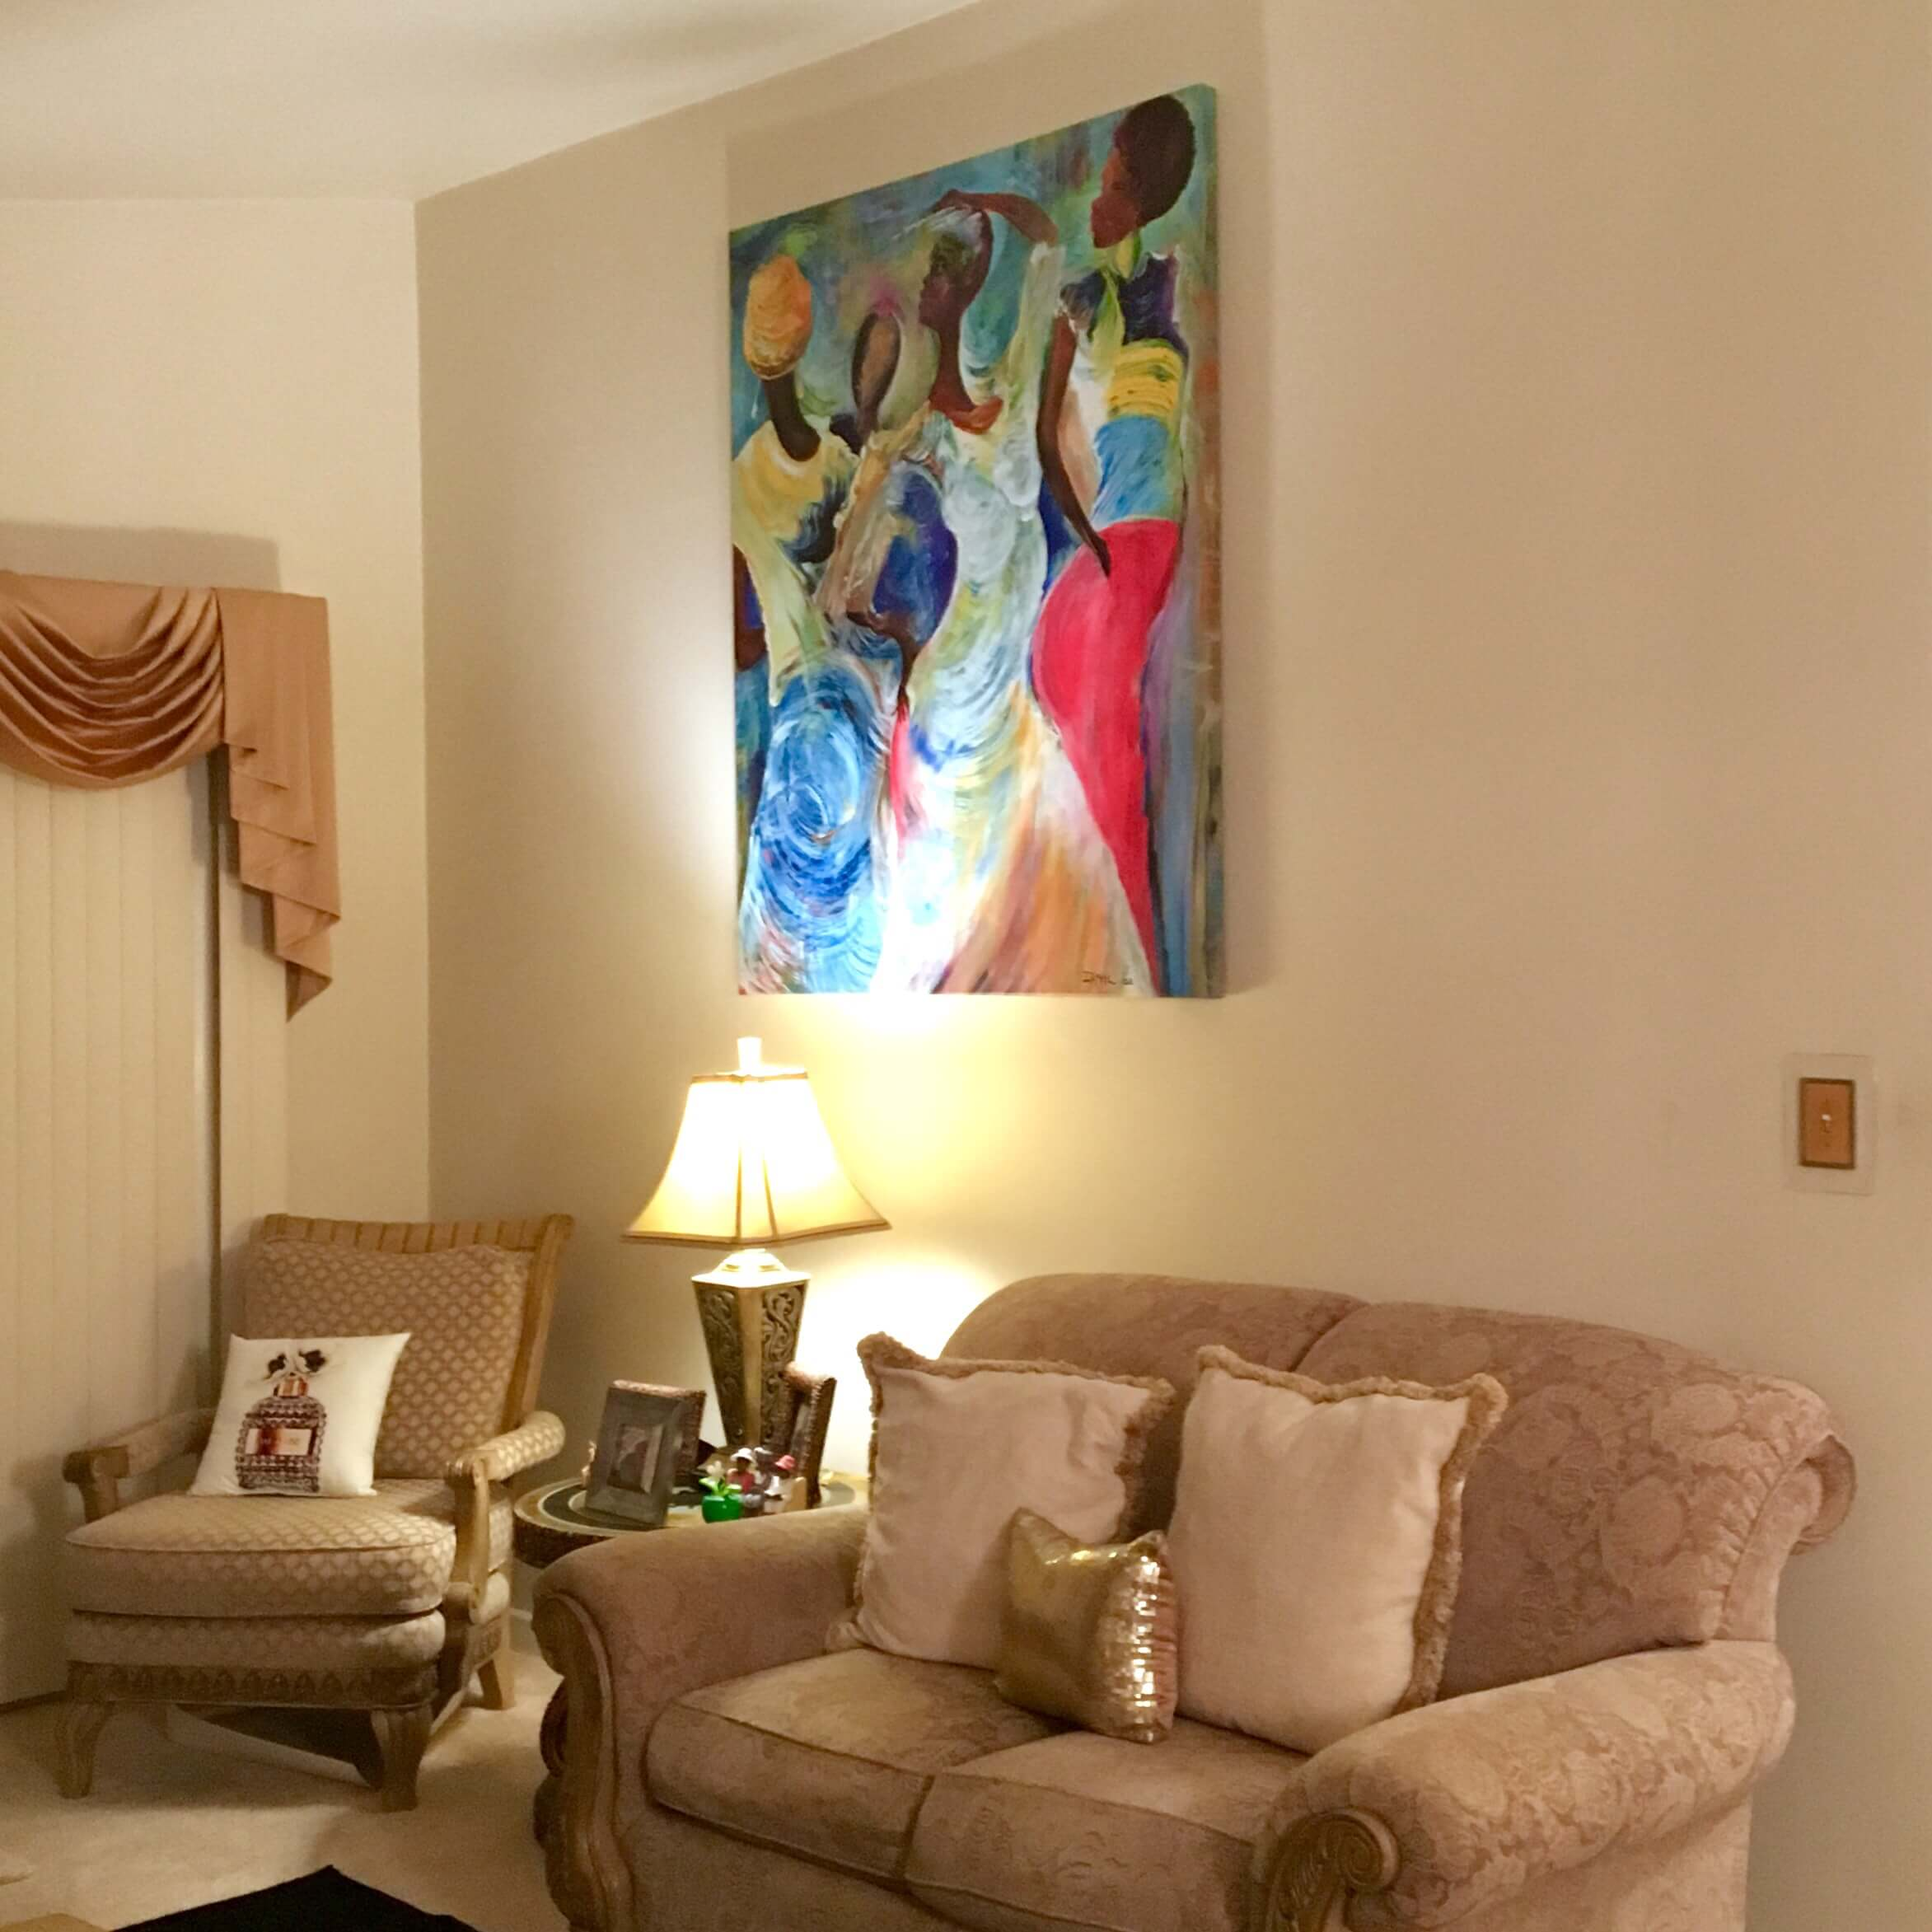 We will come to your home or office to professionally hang your art or mirror. We're experienced and insured...don't take chances! See more custom framing options at our Keswick Village showroom just north of Philadelphia in Glenside PA ( Pennsylvania ) , 19038 . Custom Picture Framer of Glenside carries thousands of frame styles, prints, maps, limited editions, mirrors, and more!